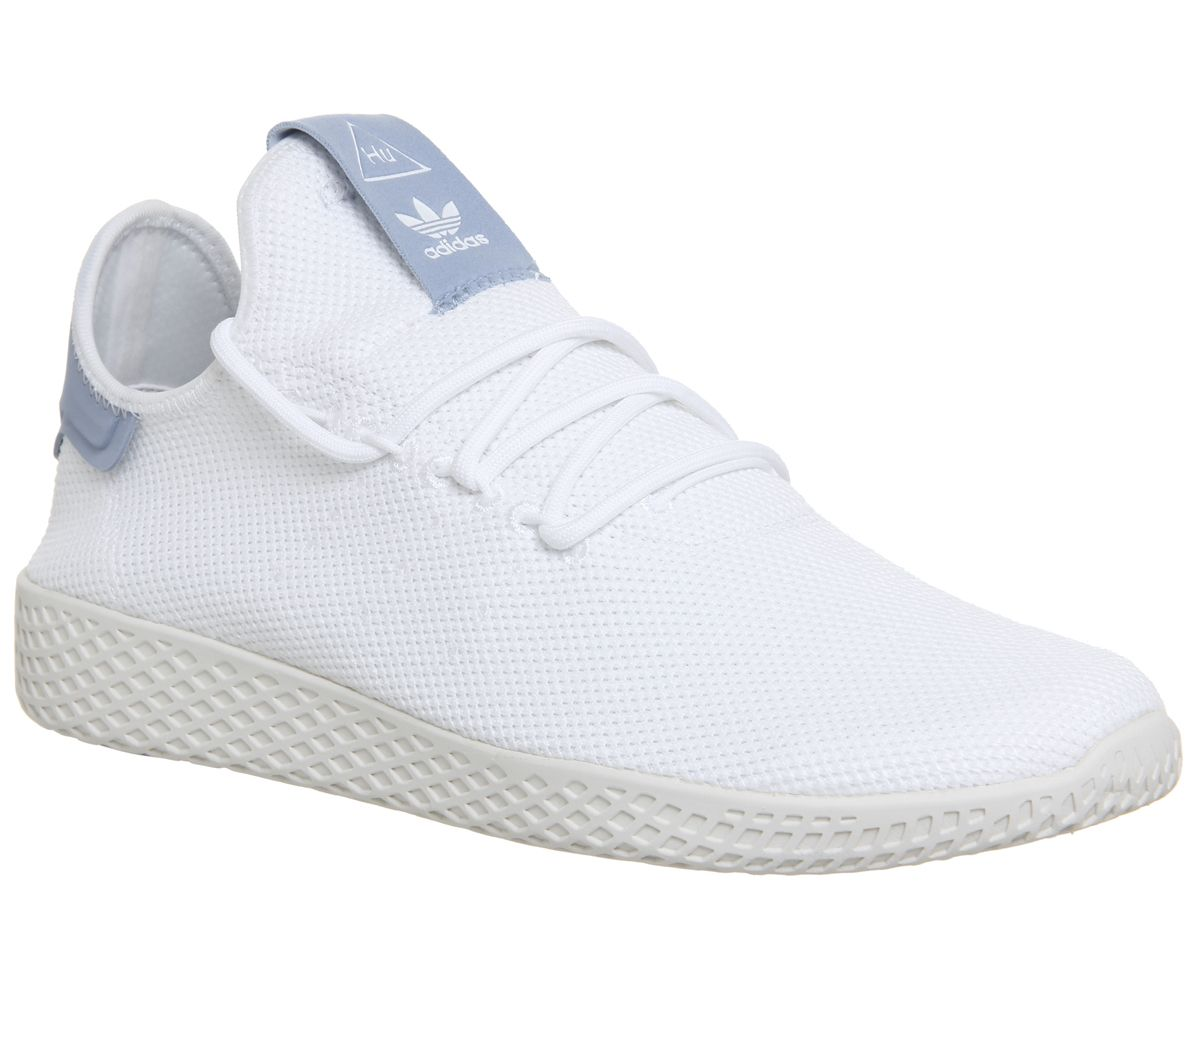 fba23f19223e9 adidas Pw Tennis Hu White White Blue - Unisex Sports